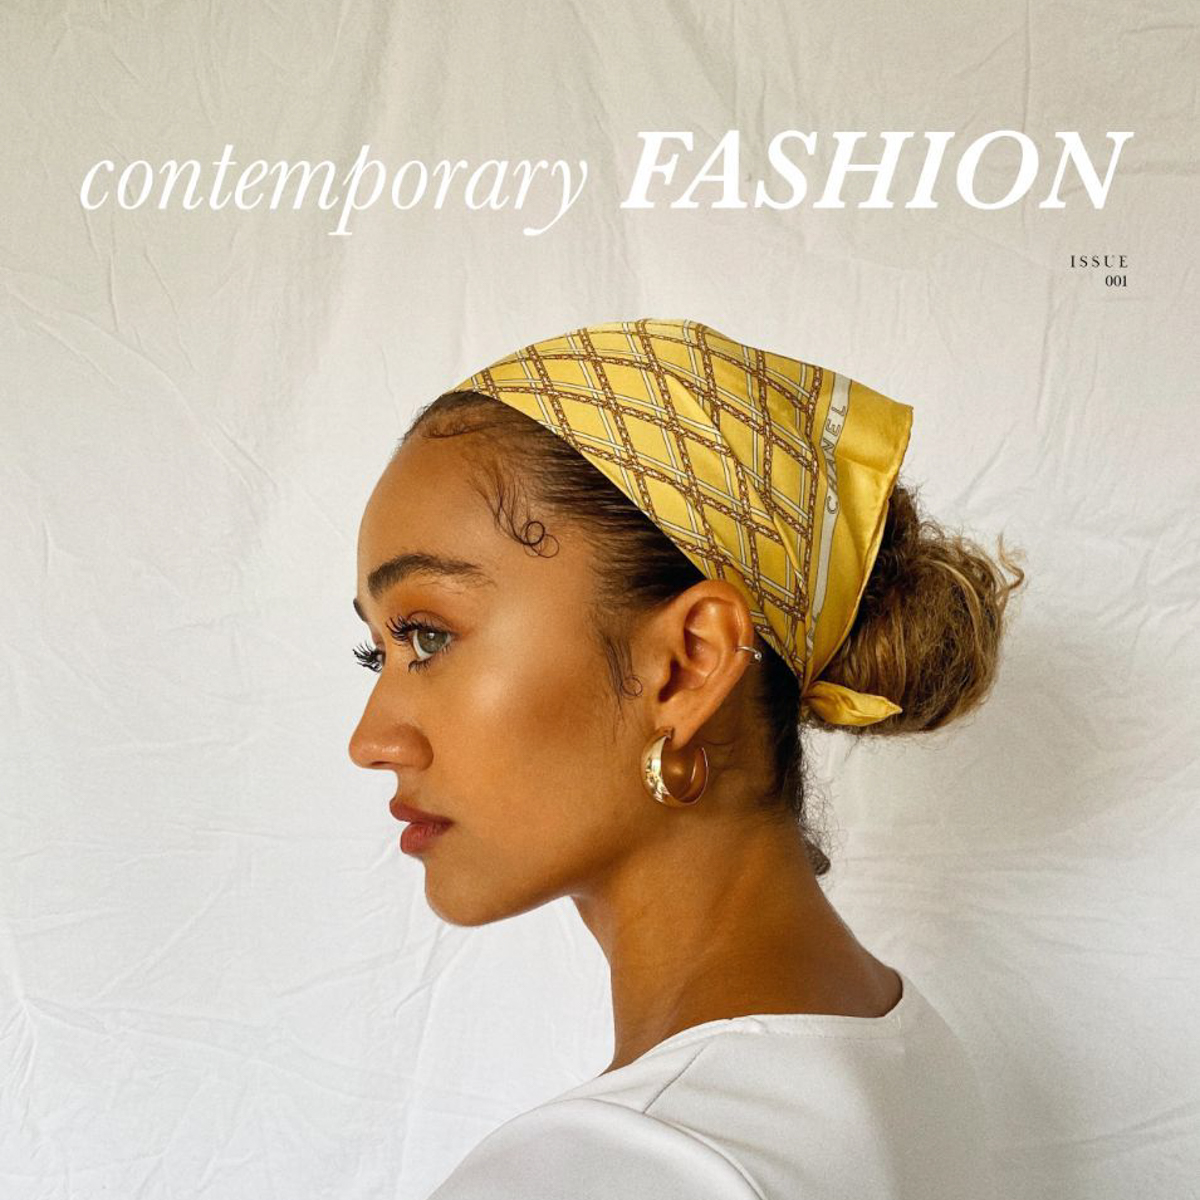 Contemporary Fashion Issue 1